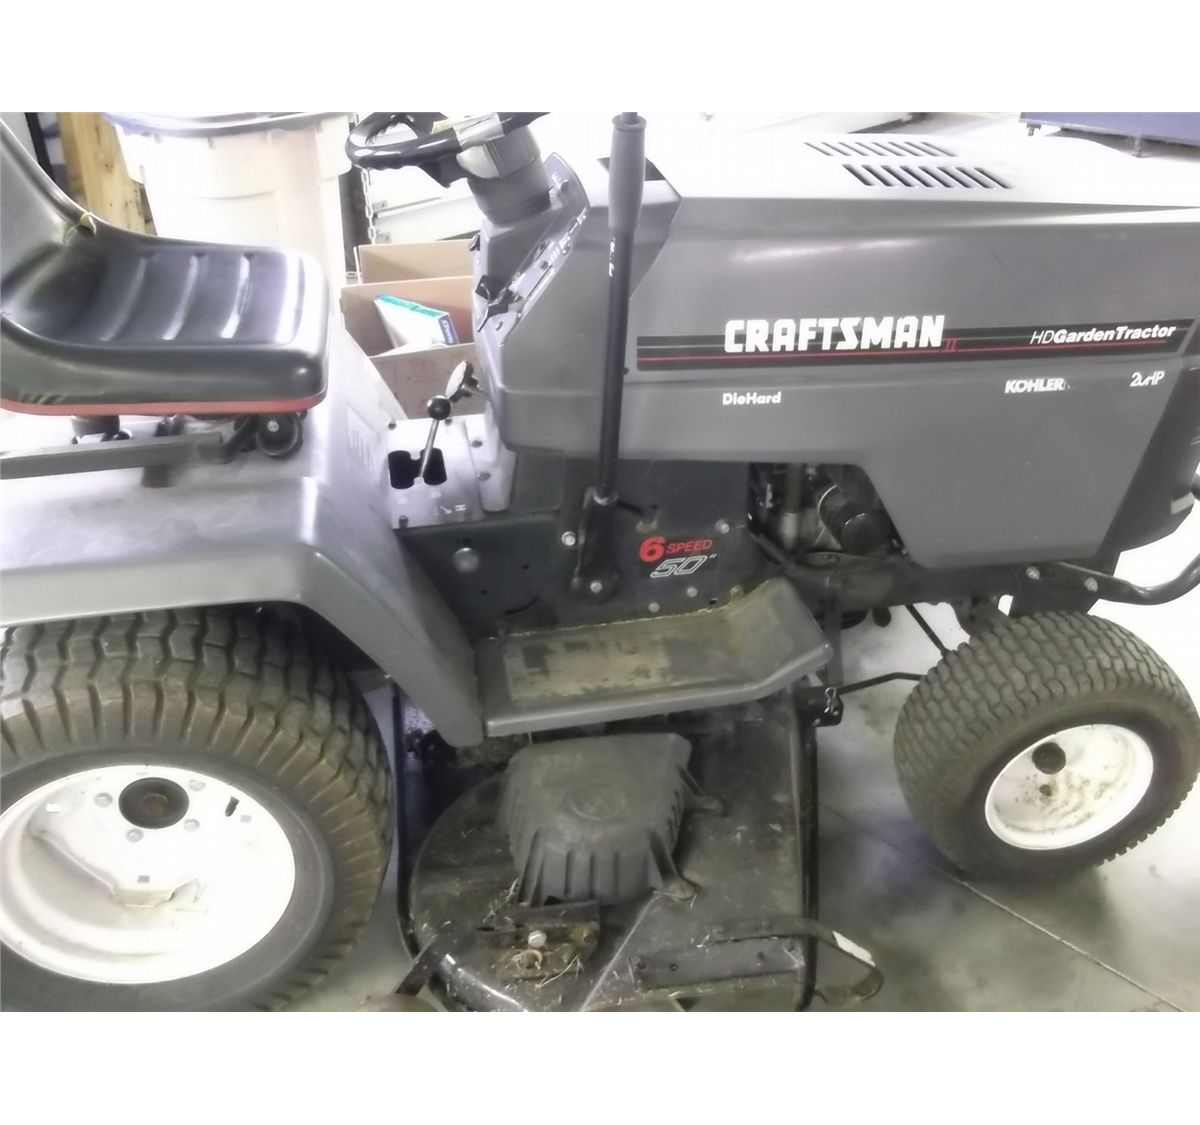 Craftsman Garden Tractor What Craftsman Tractor Is Most Desired By Collectors 2016 Craftsman